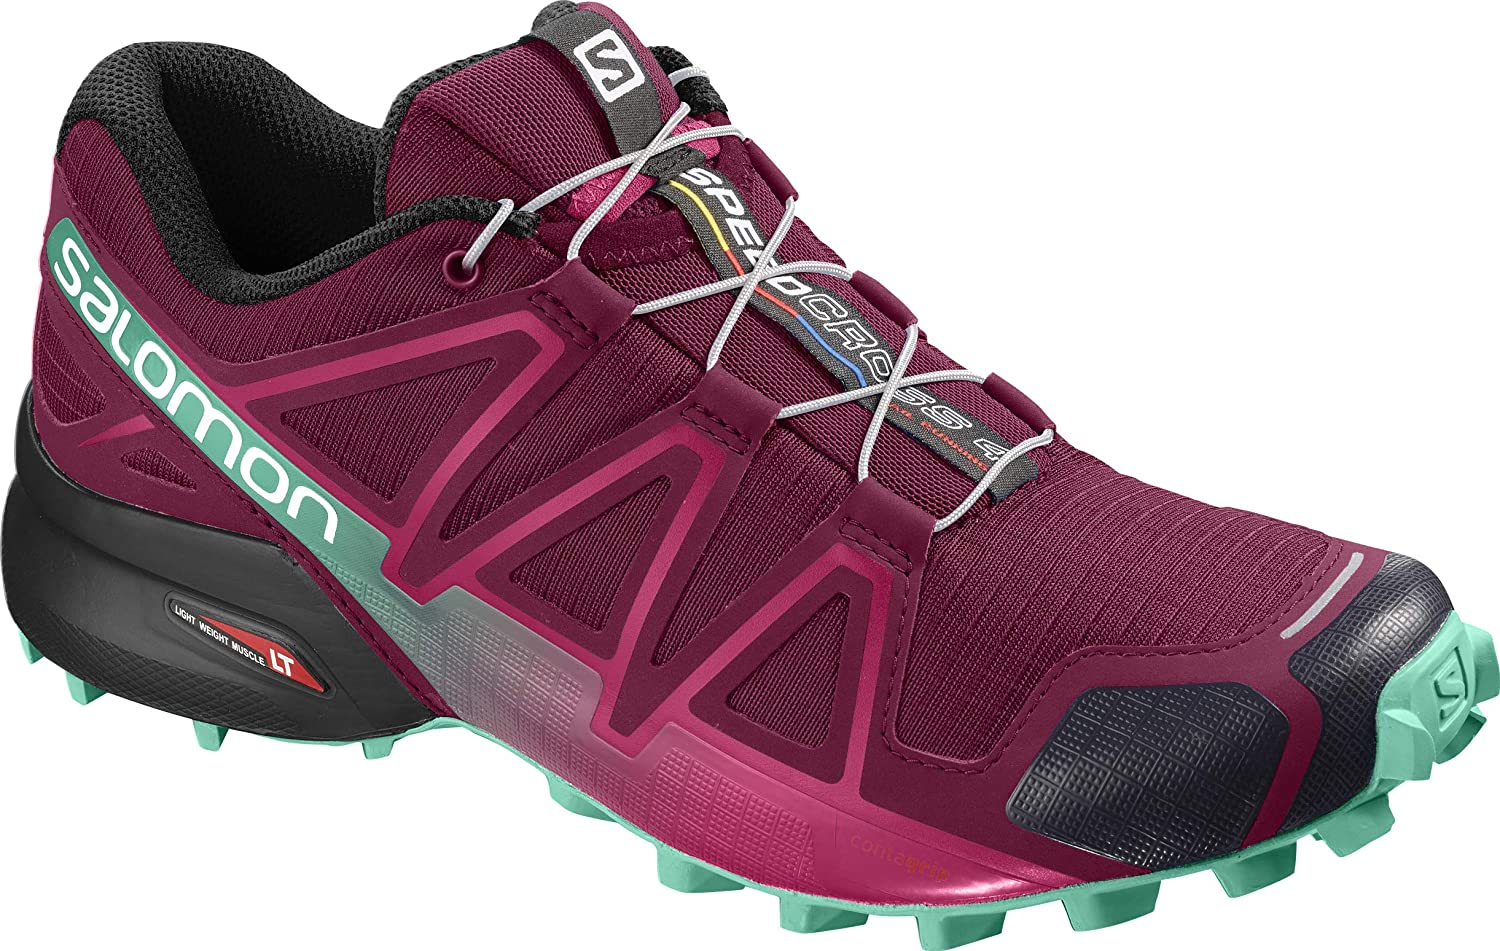 a0391682c4632 Amazon.com | Salomon Womens Speedcross 4 Trail Sneaker | Trail Running